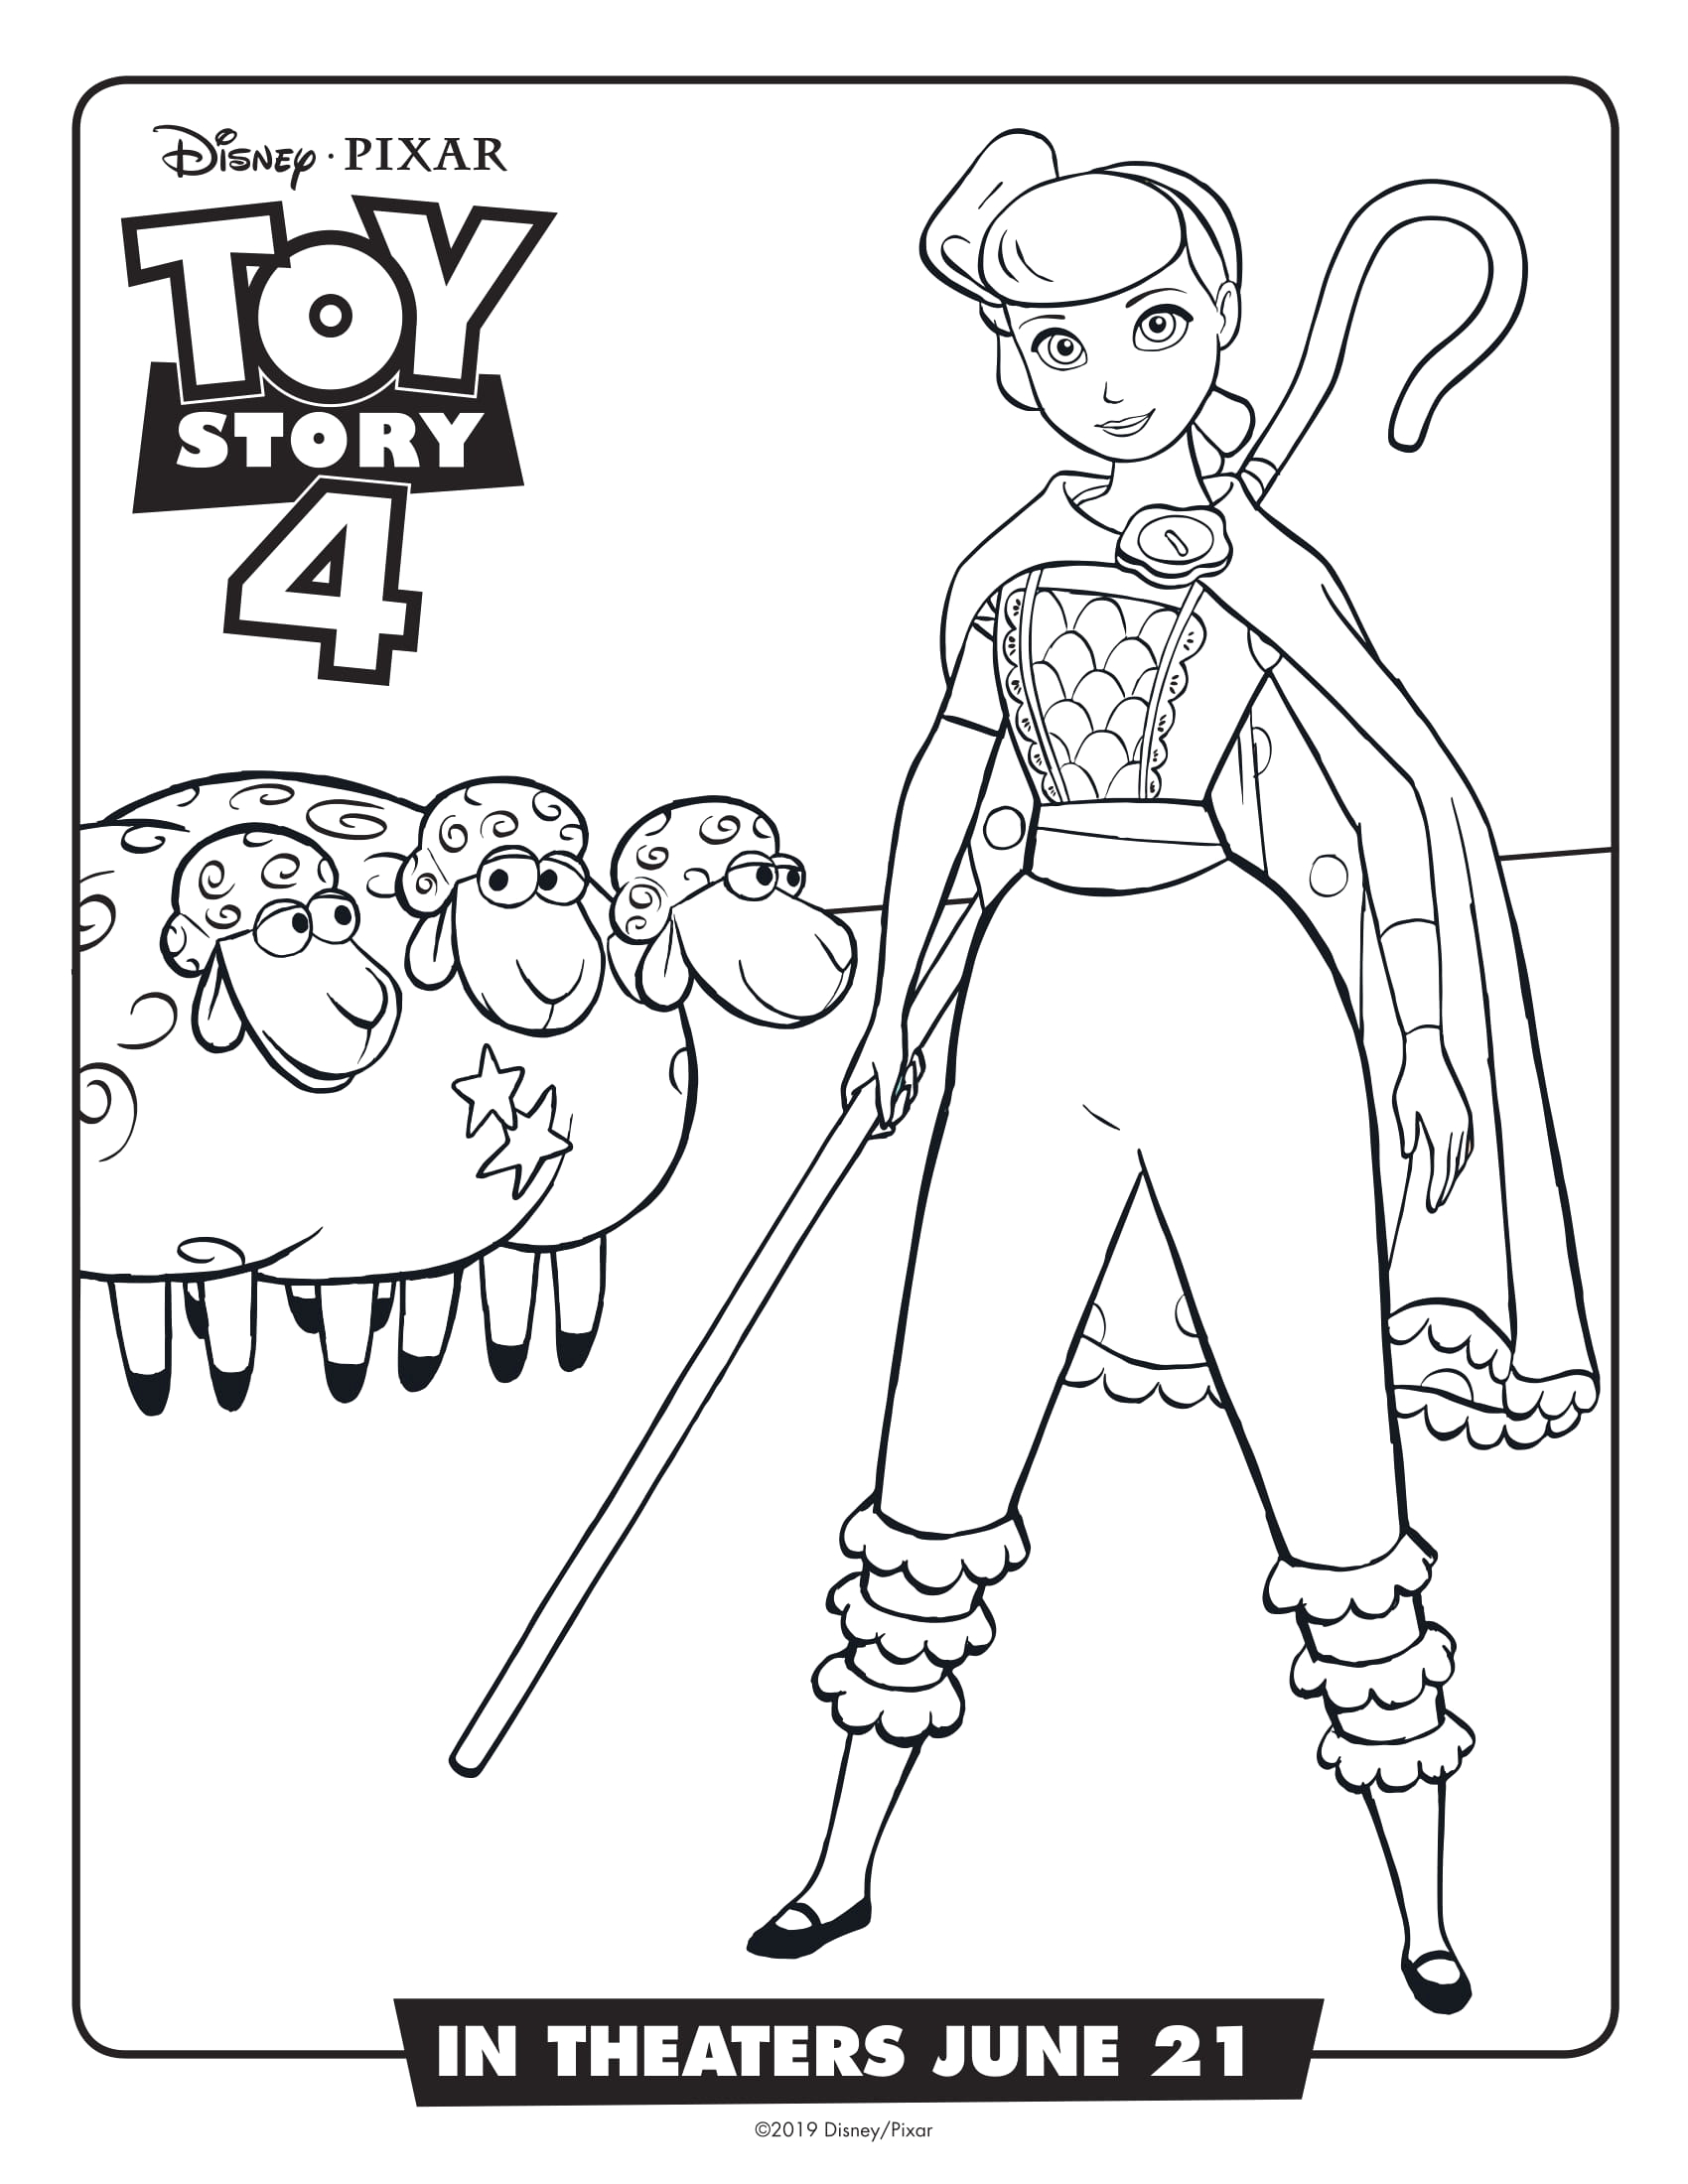 Bo Peep toy Story 4 Coloring Page toy Story 4 Coloring Pages Best Coloring Pages for Kids